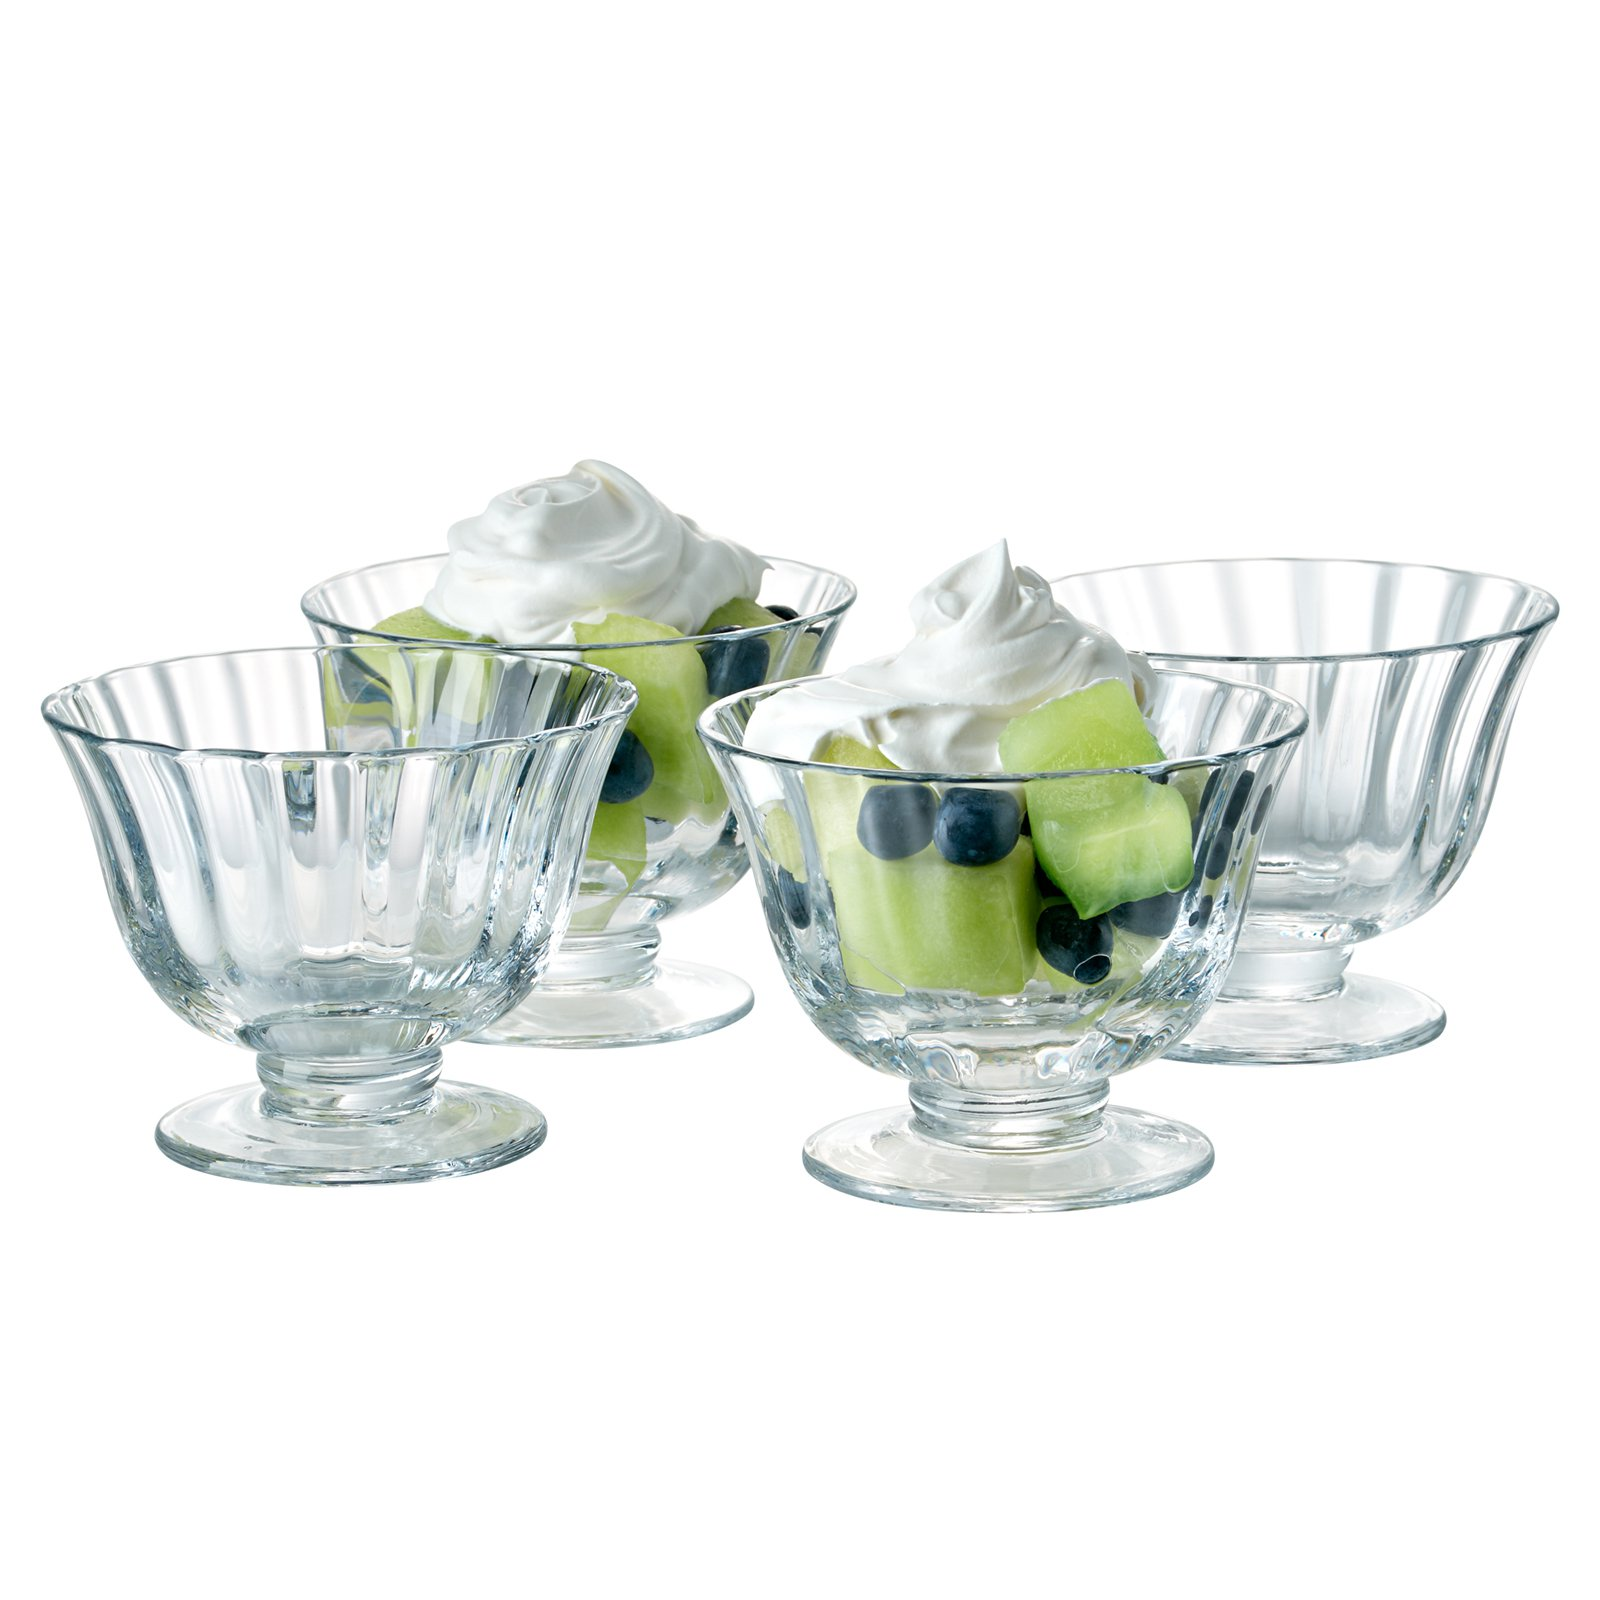 Artland Aspen Coupe Dessert Bowl - Set of 4